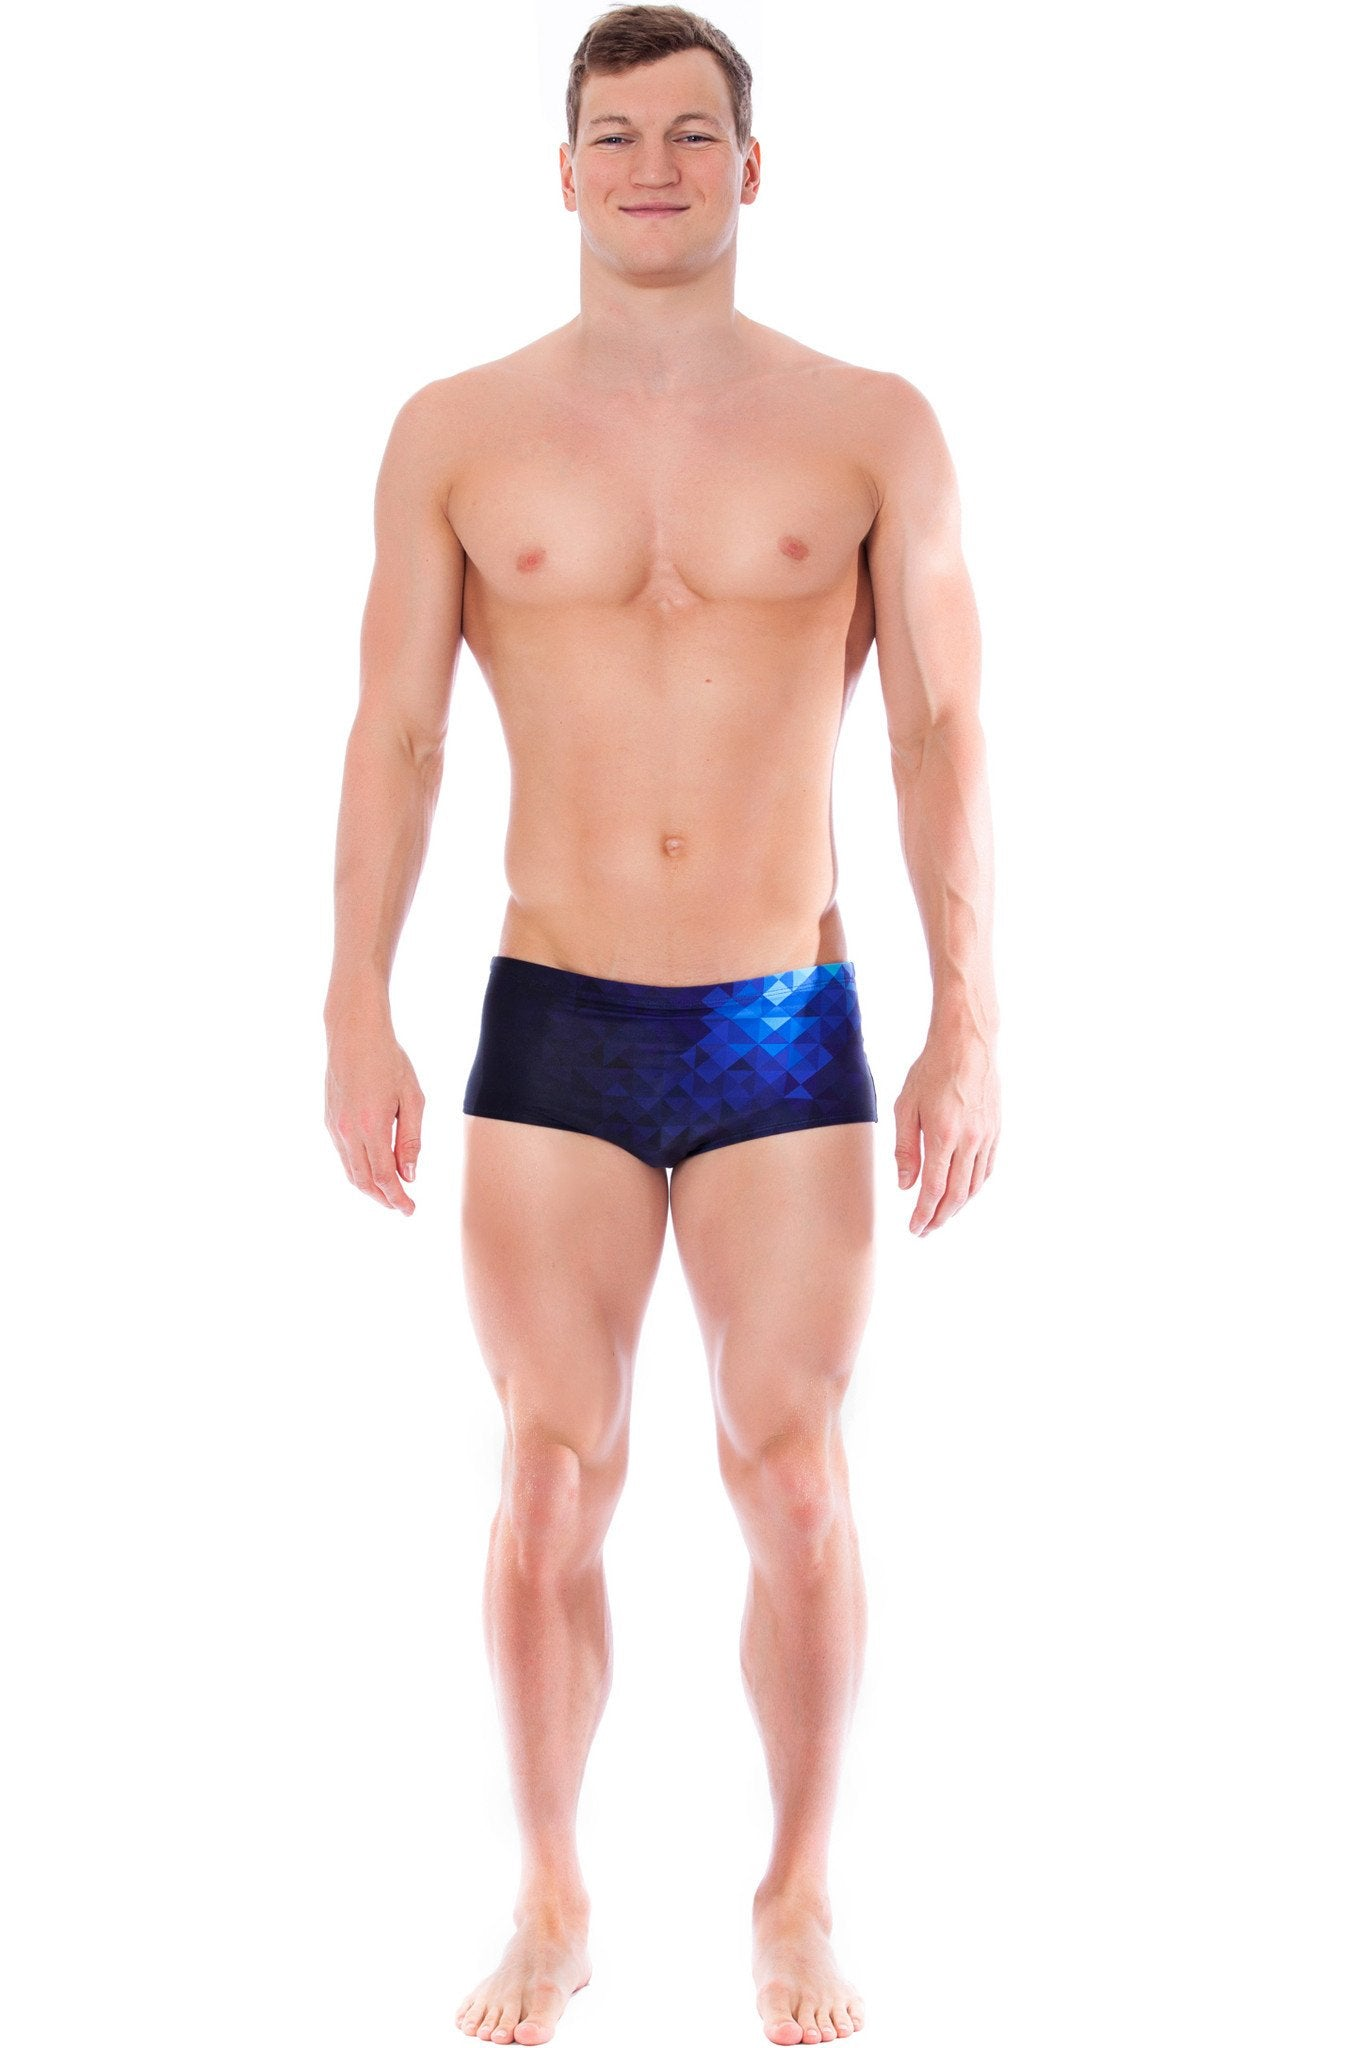 Nuclear - Mens M Only Men's Trunks - Shop Zealous Training Swimwear